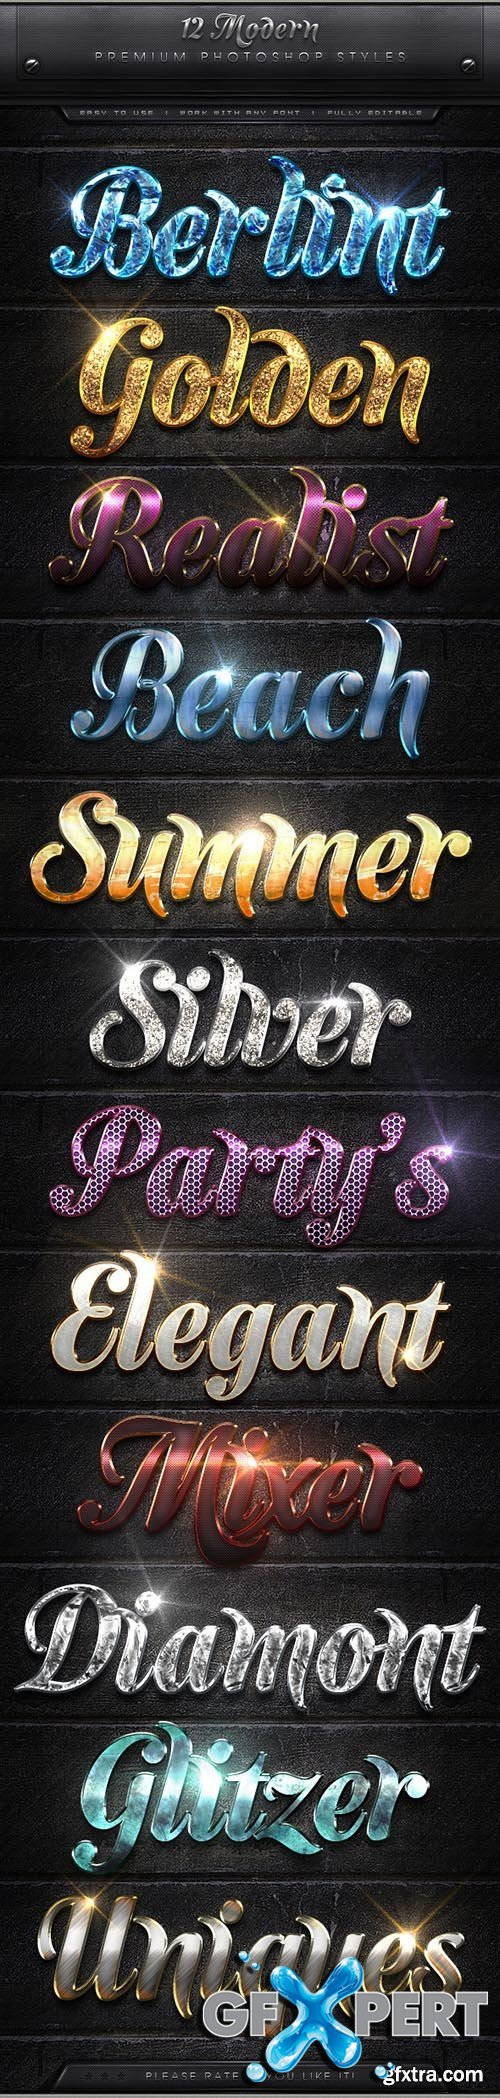 Graphicriver - 12 Modern Text Effect Styles 7974300